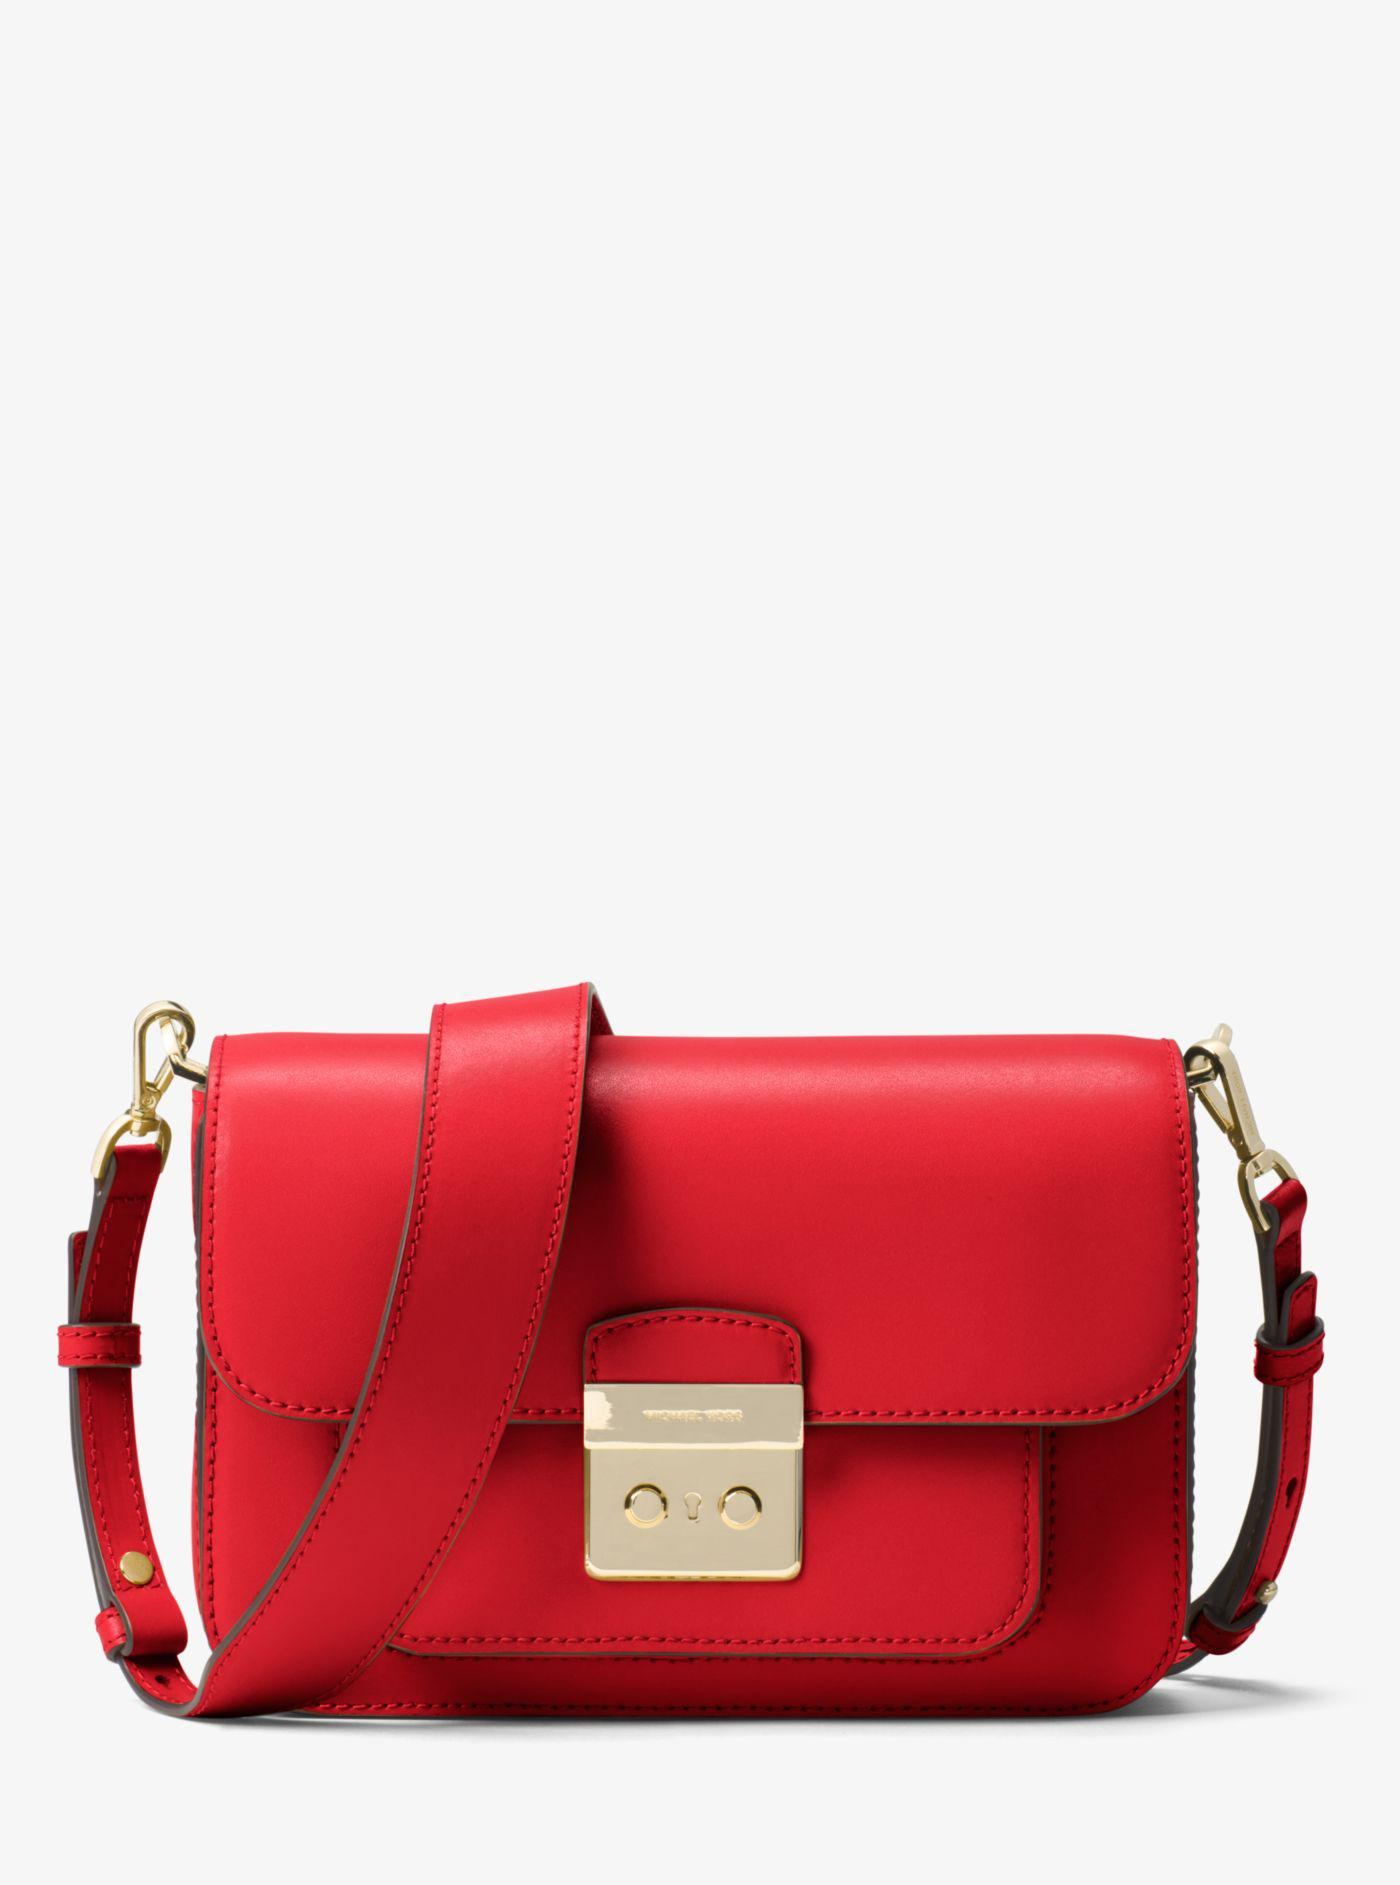 769c46ad30be6 Lyst - Michael Kors Michael Sloan Editor Leather Shoulder Bag in Red